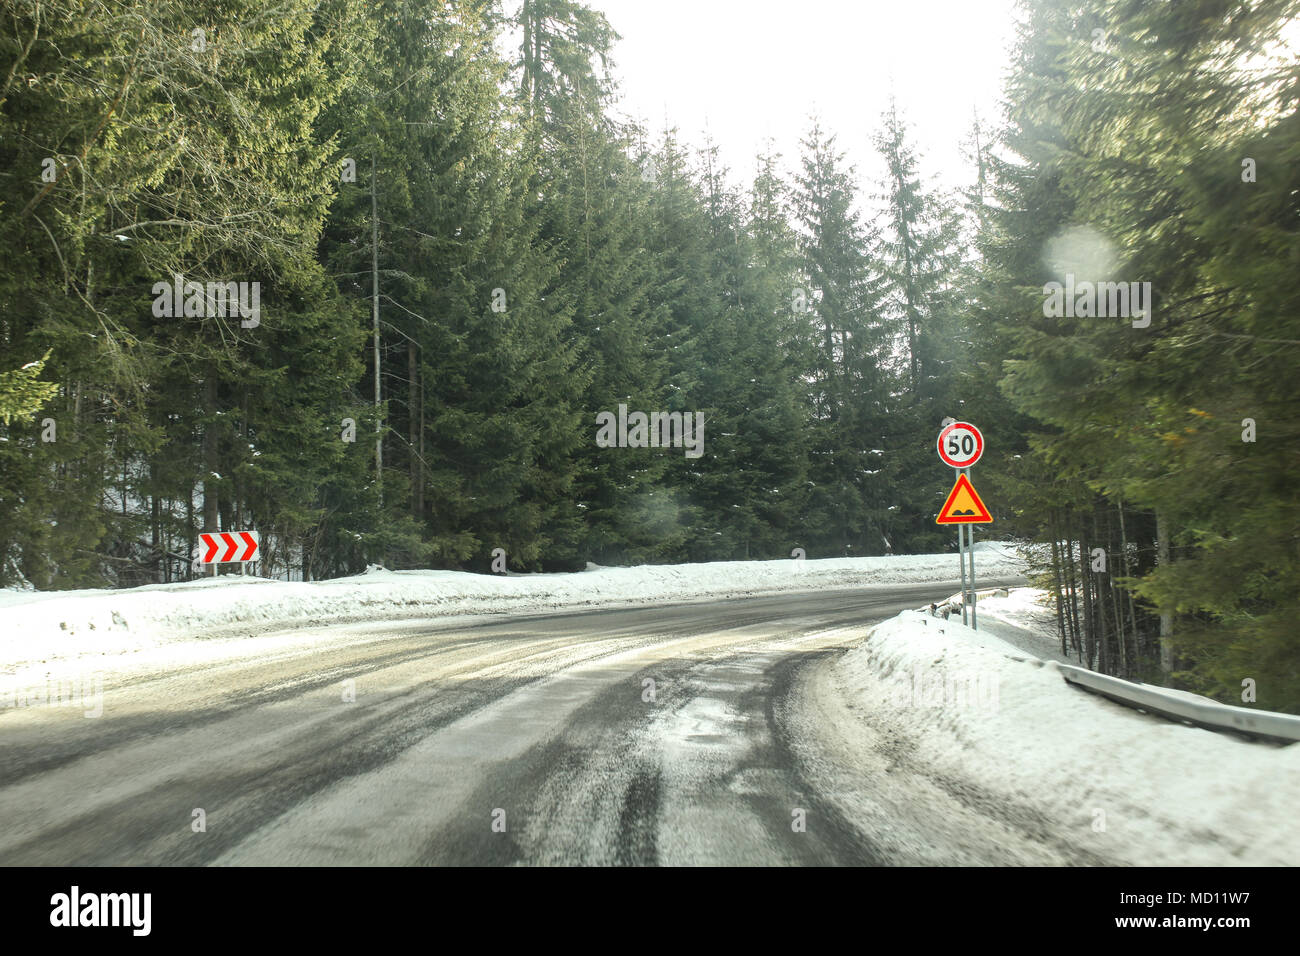 Driver view on sharp road curve, partially covered with snow in coniferous forest, with strong blinding sun light. Speed limit 50 and bumps sign to il - Stock Image